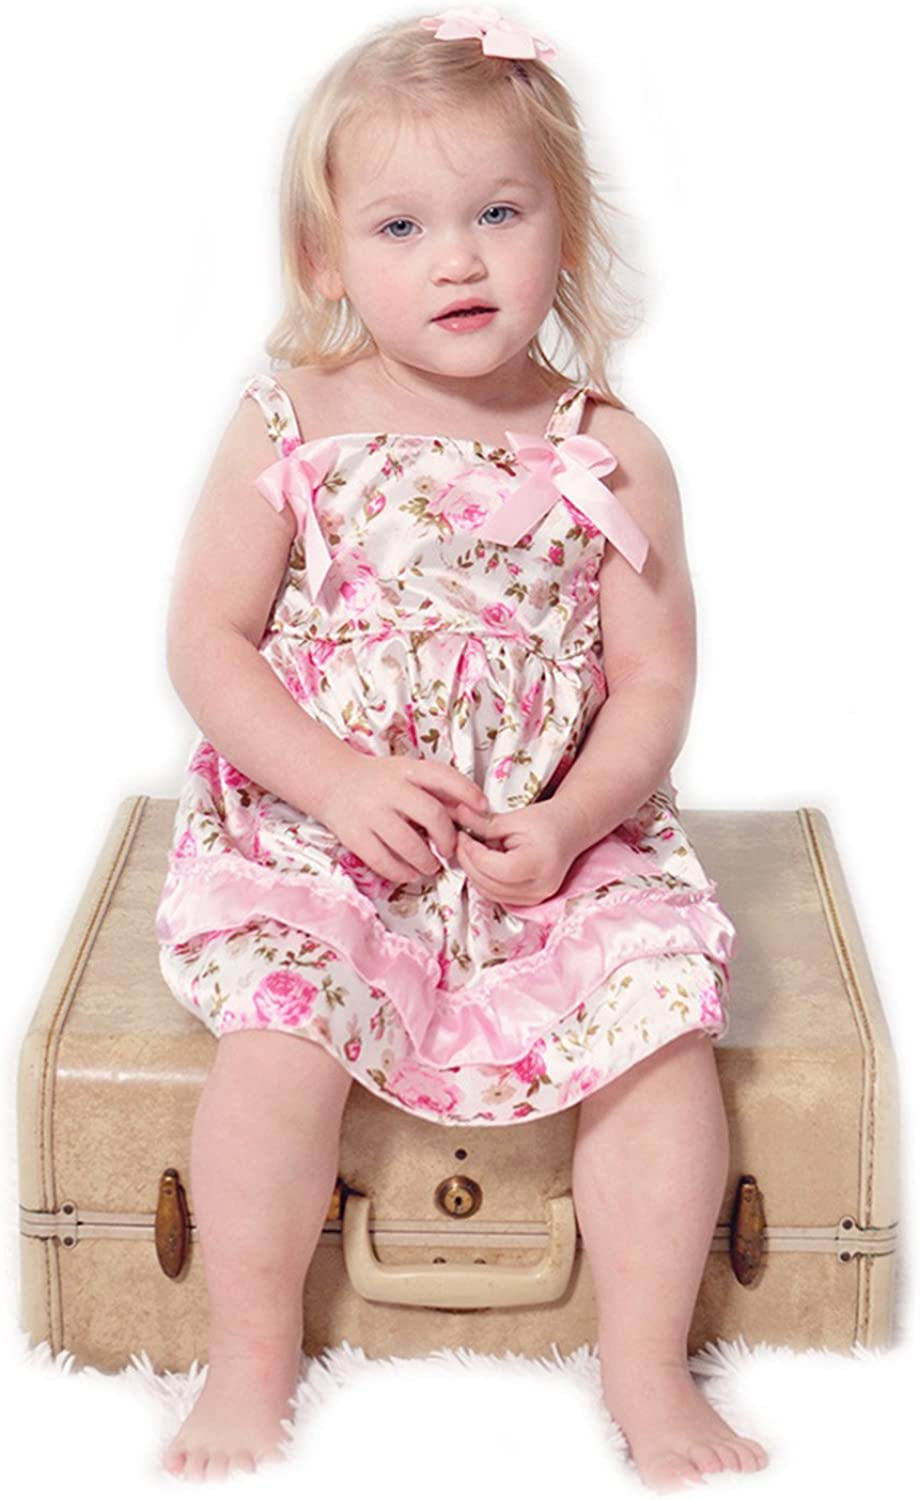 Special sale item Baby Girl Toddler Swing Dress Set-3PCS Cash special price Bloomer Top